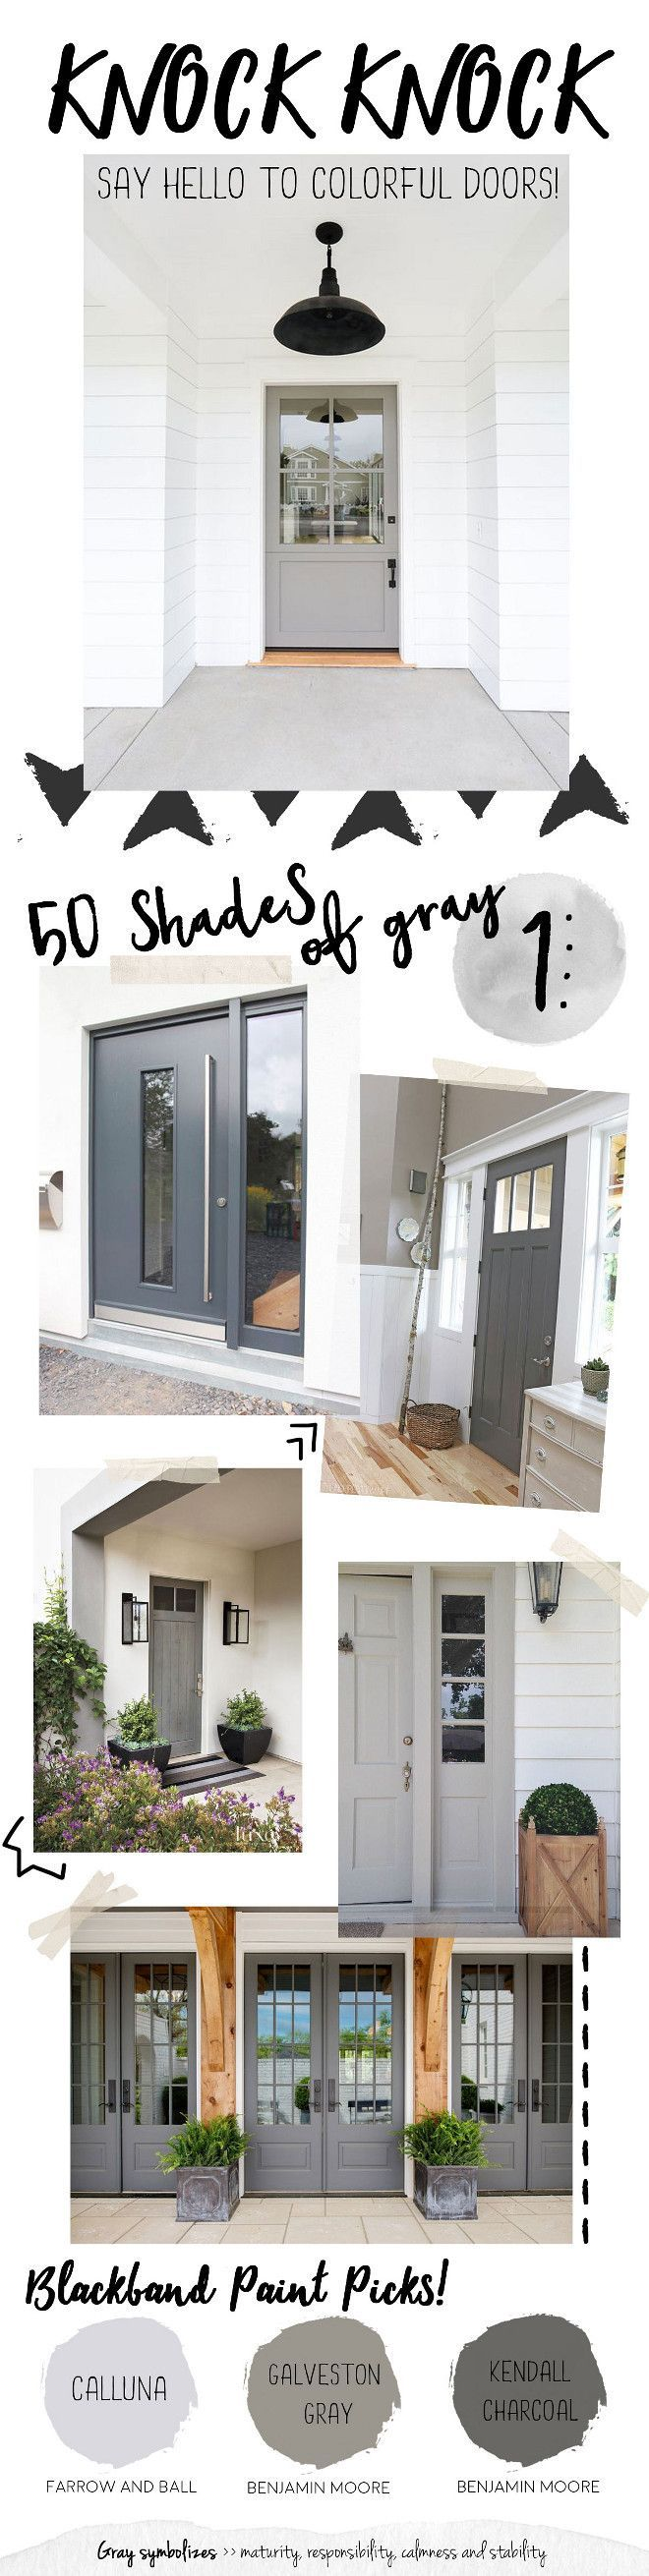 The Perfect Paint Schemes for House Exterior Gray Door Paint Color. Best grey front door paint colors. You simply can't go wrong with a gray front door. Calluna by Farrow and Ball, Galveston… Perfect Paint Schemes for House Exterior Gray Door Paint Color. Best grey front door paint colors. You simply can't go wrong with a gray front door. Calluna by Farrow and Ball, Galveston…Perfect Strangers  Perfect Strangers may refer to: